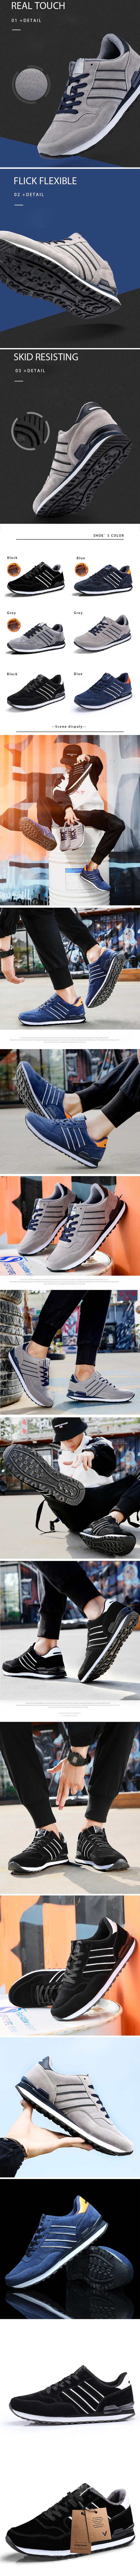 HTB1YpijXLvsK1RjSspdq6AZepXam Valstone Men's Casual sneakers Breathable cemented shoes outdoor ultra light walking shoes winter Spring everyday shoes hot sale